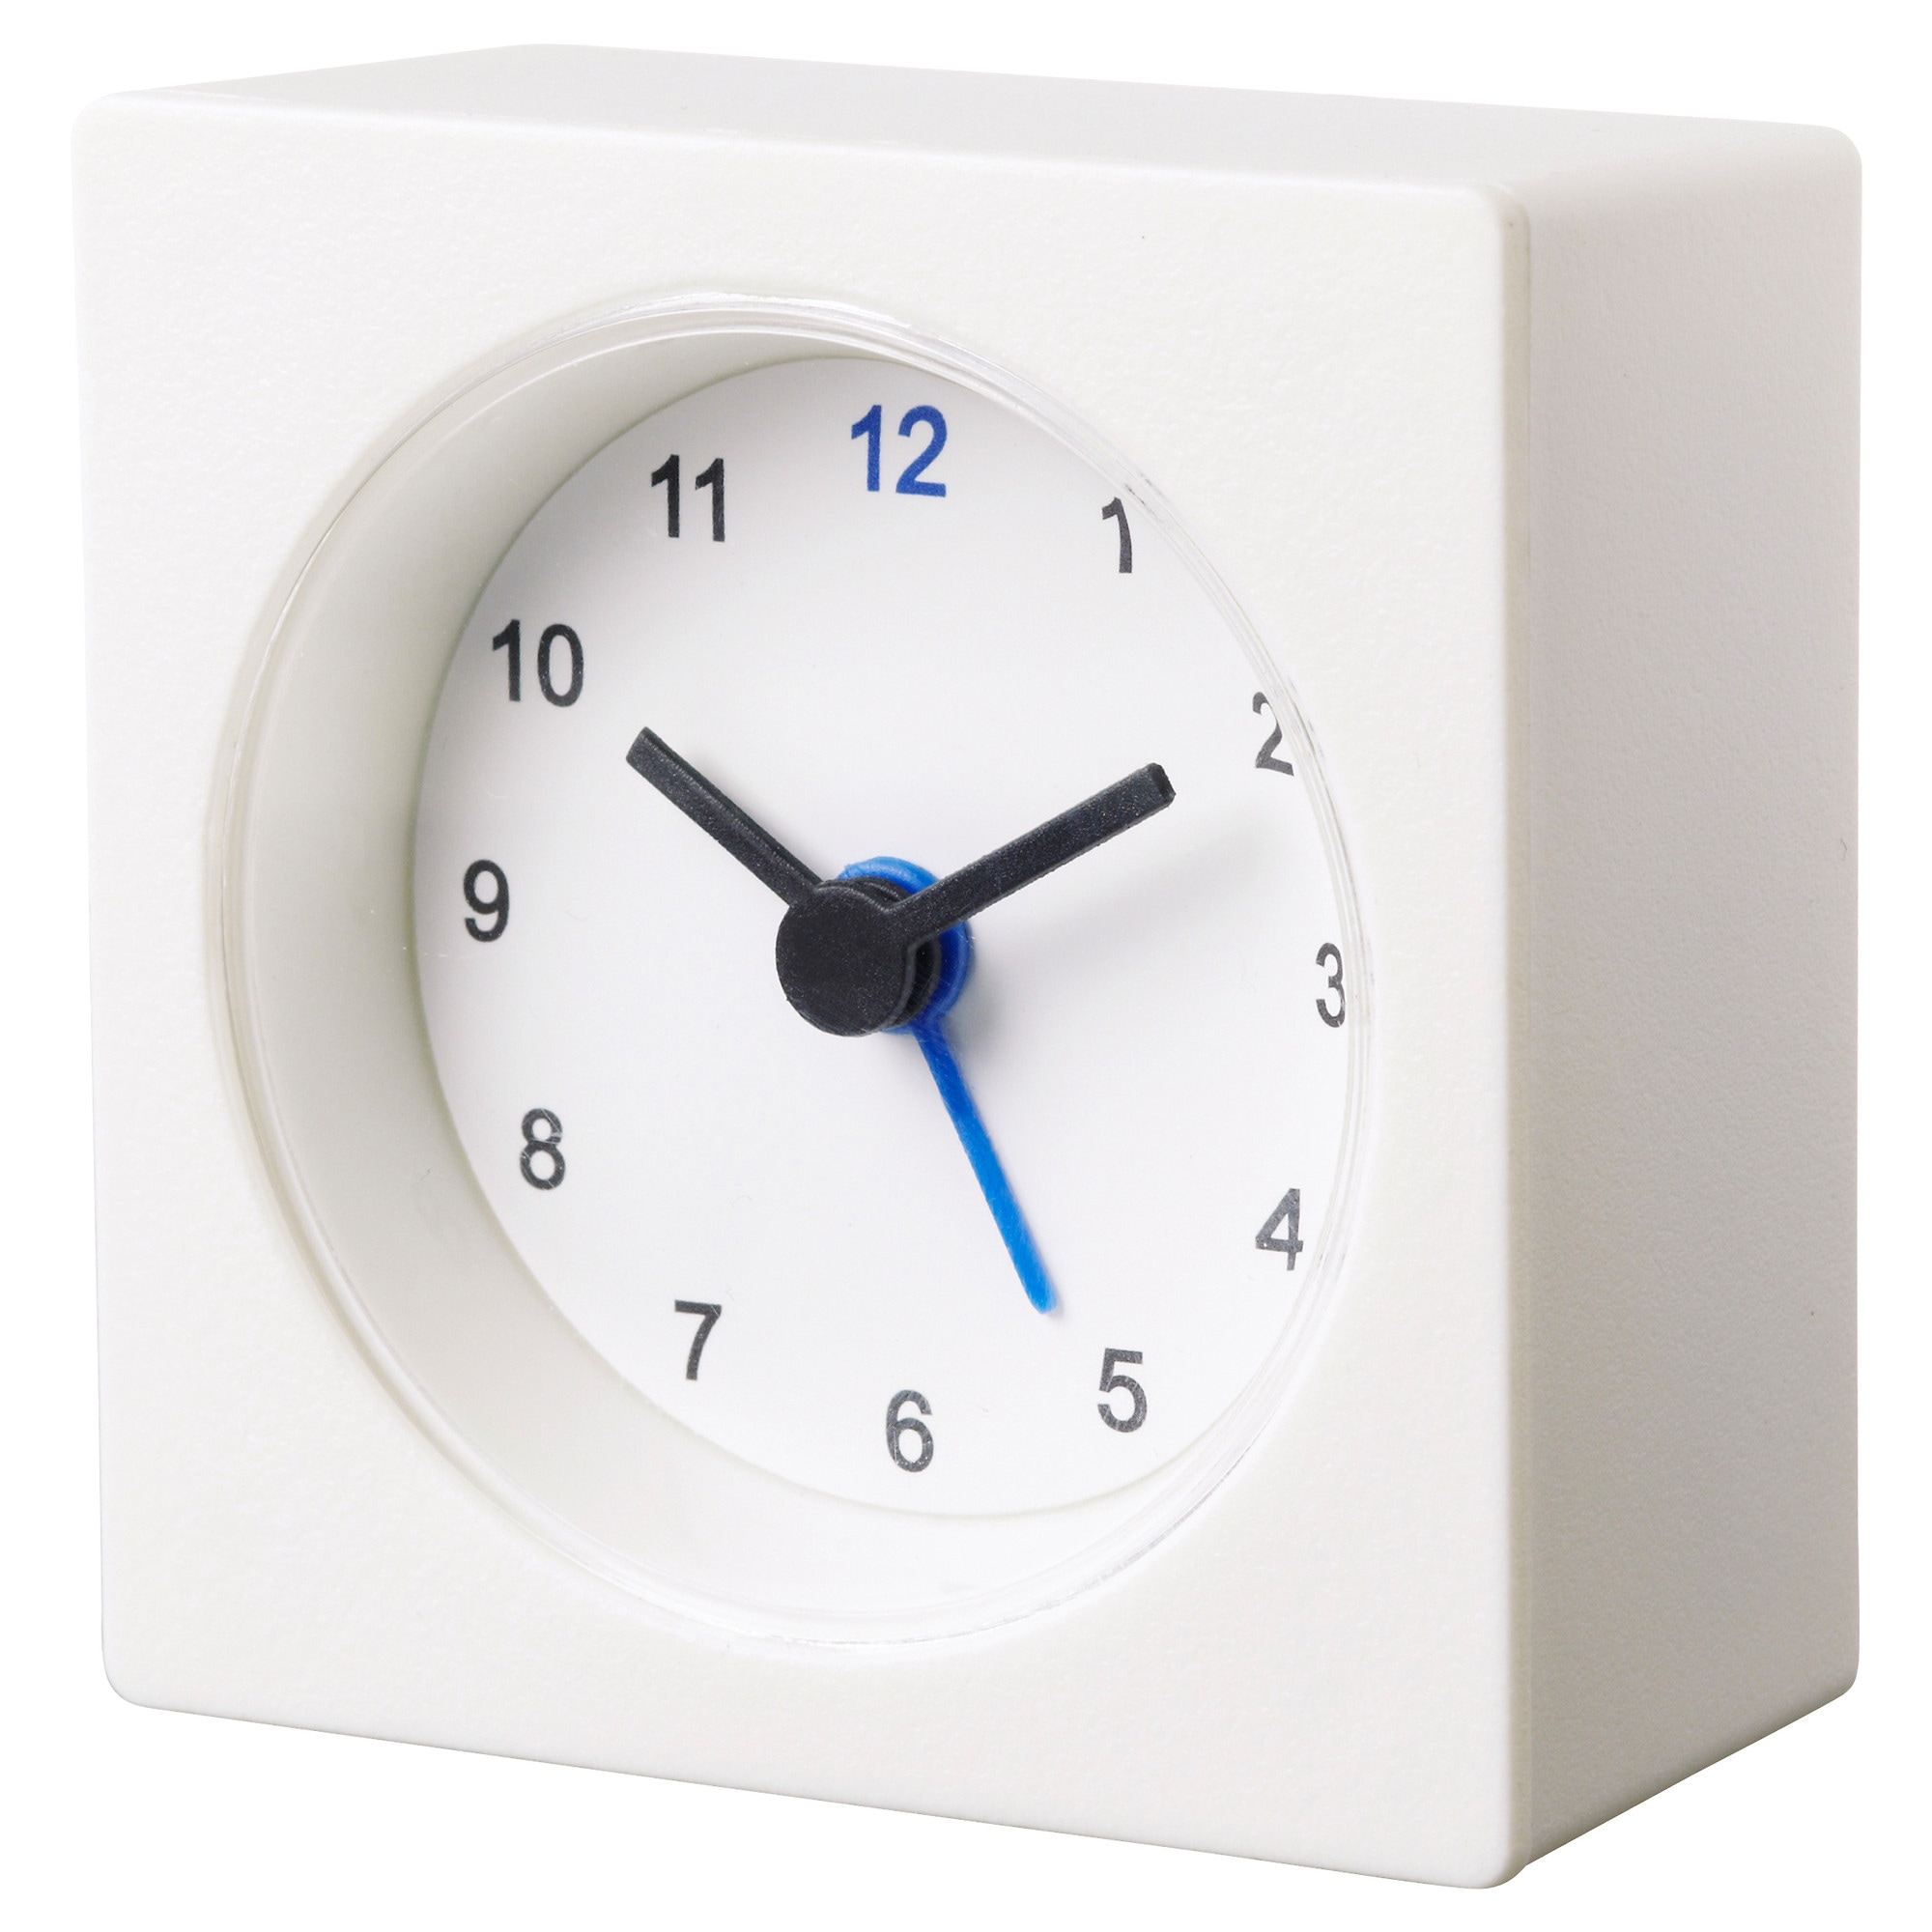 Vckis alarm clock ikea inter ikea systems bv 1999 2017 privacy policy amipublicfo Image collections